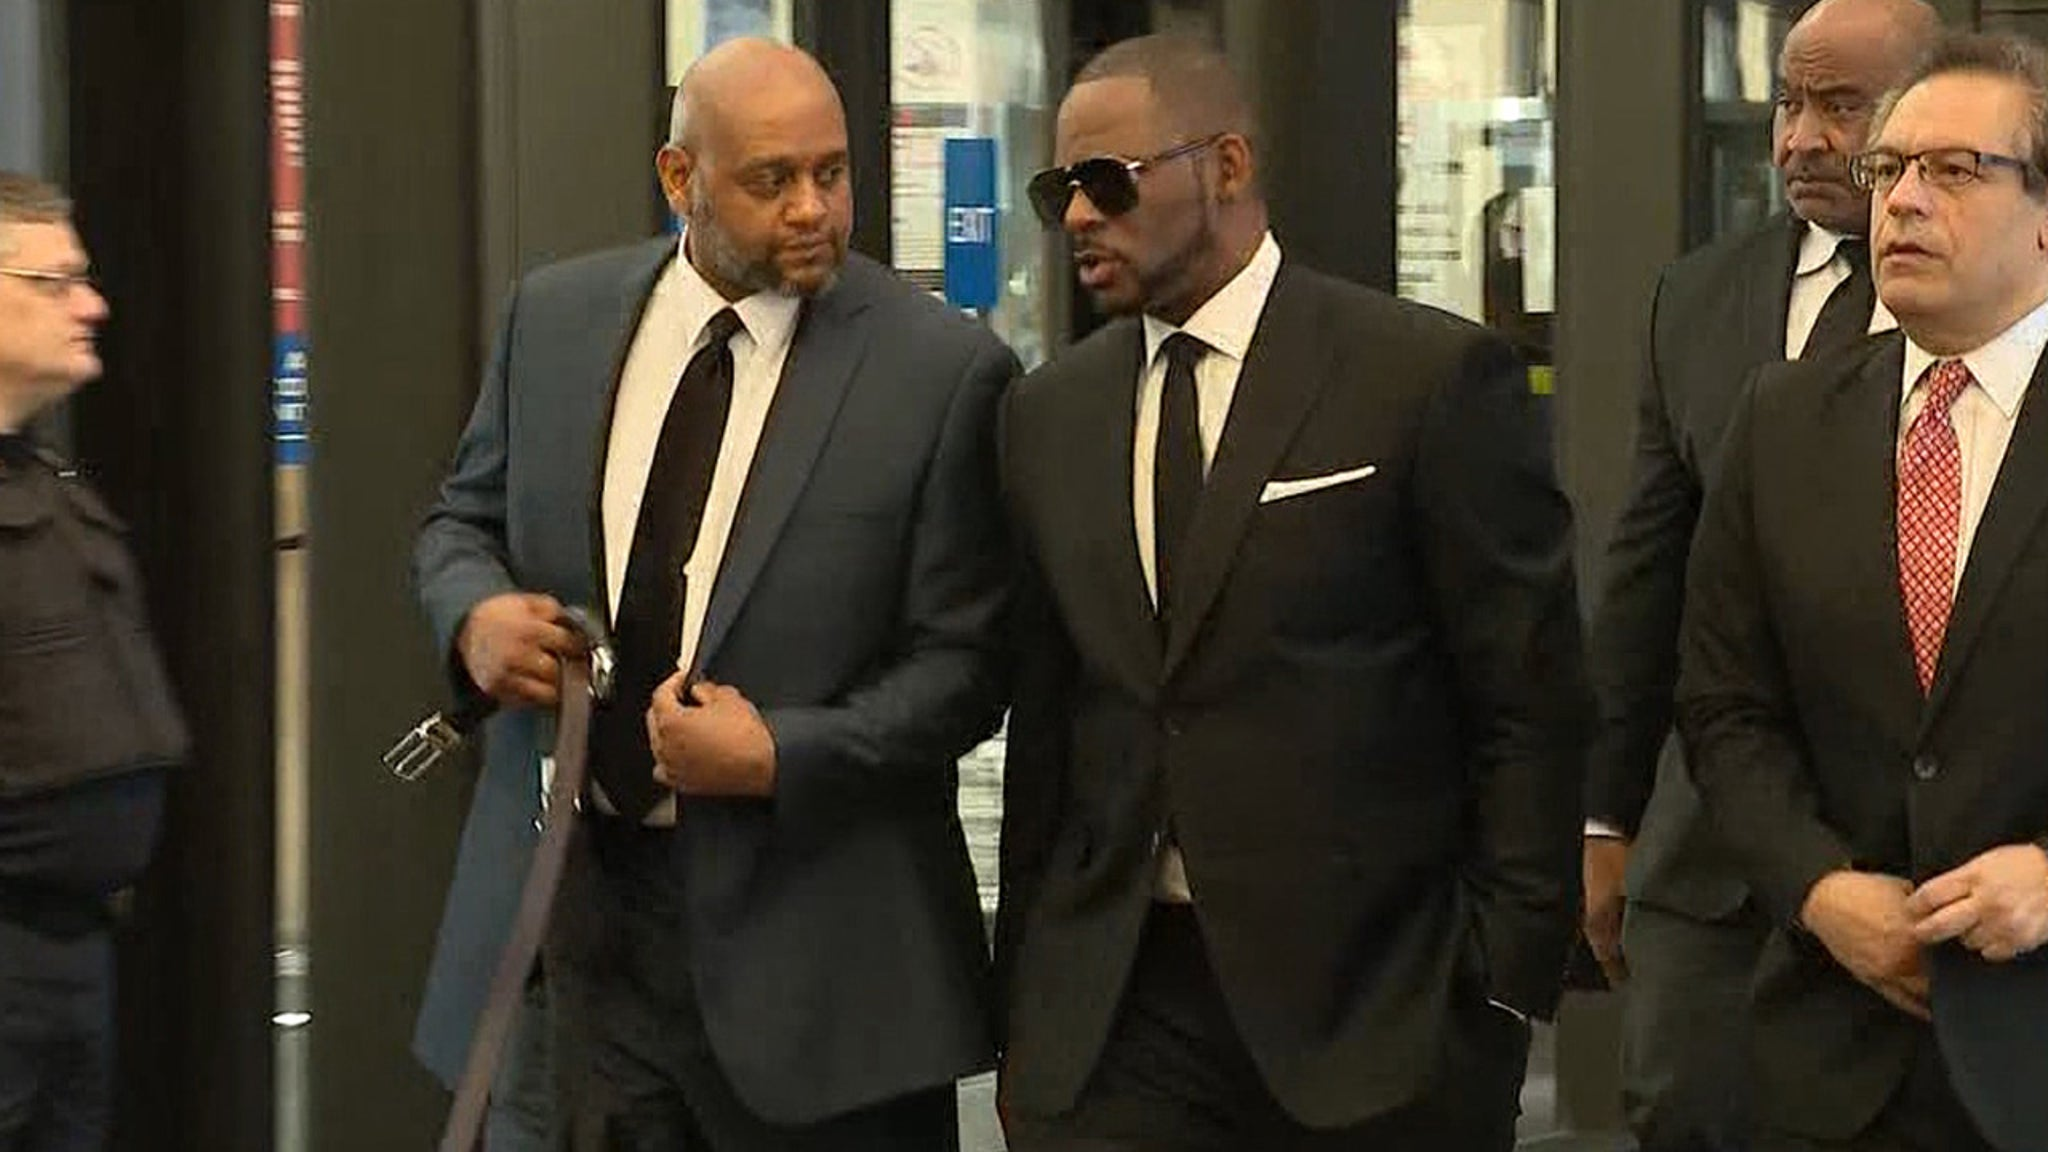 R Kelly Shows Up In Court With Legal Team